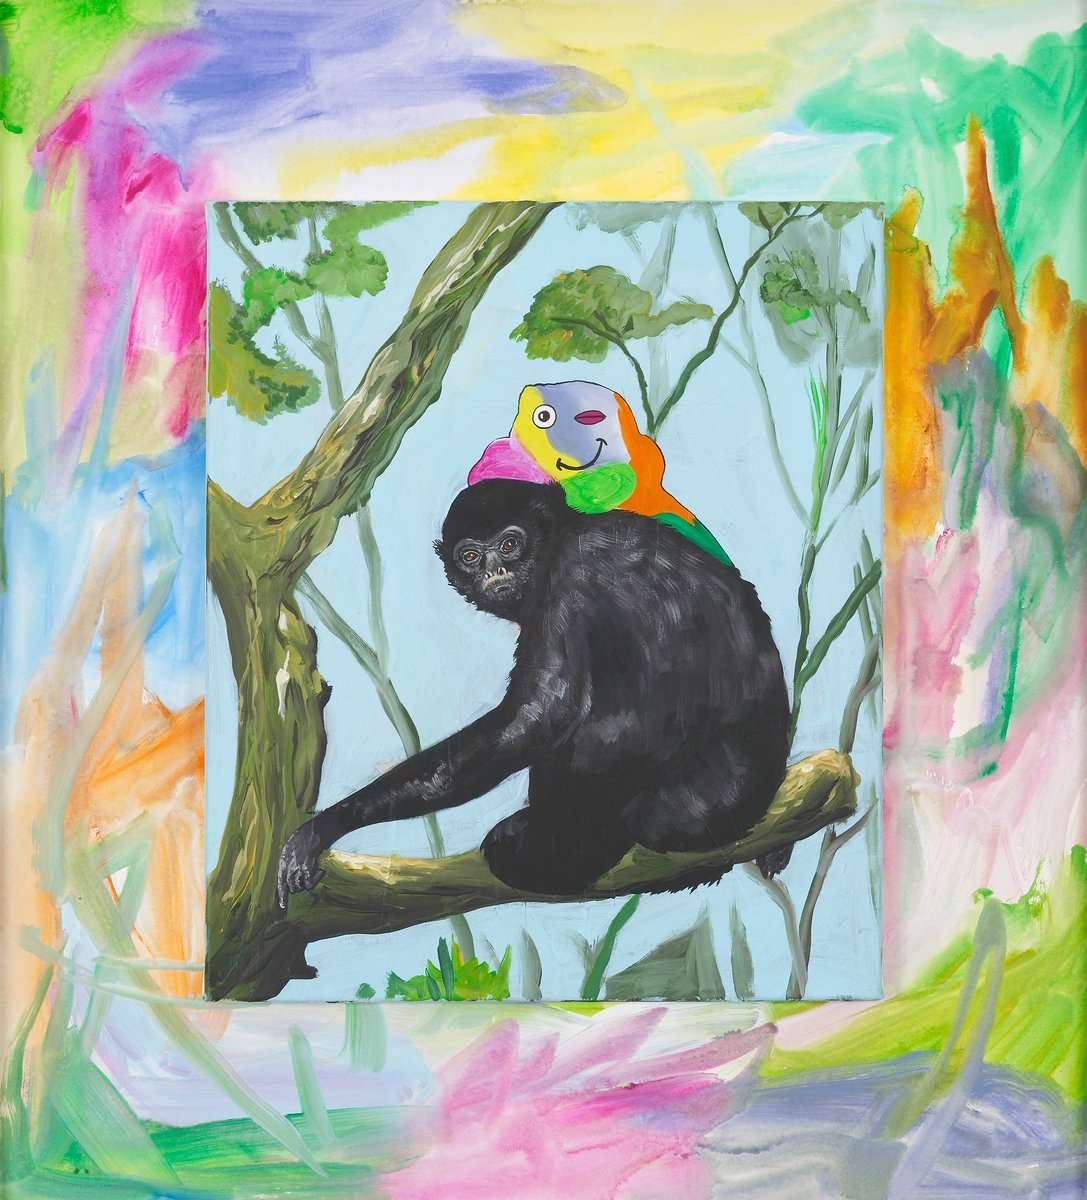 Djordje Ozbolt, &#39;Gibbons Grin,&#39; 2017, acrylic painting on paper + canvas via @herald_st | Galleries 2017 #artbasel <br>http://pic.twitter.com/07QFLd3MqF